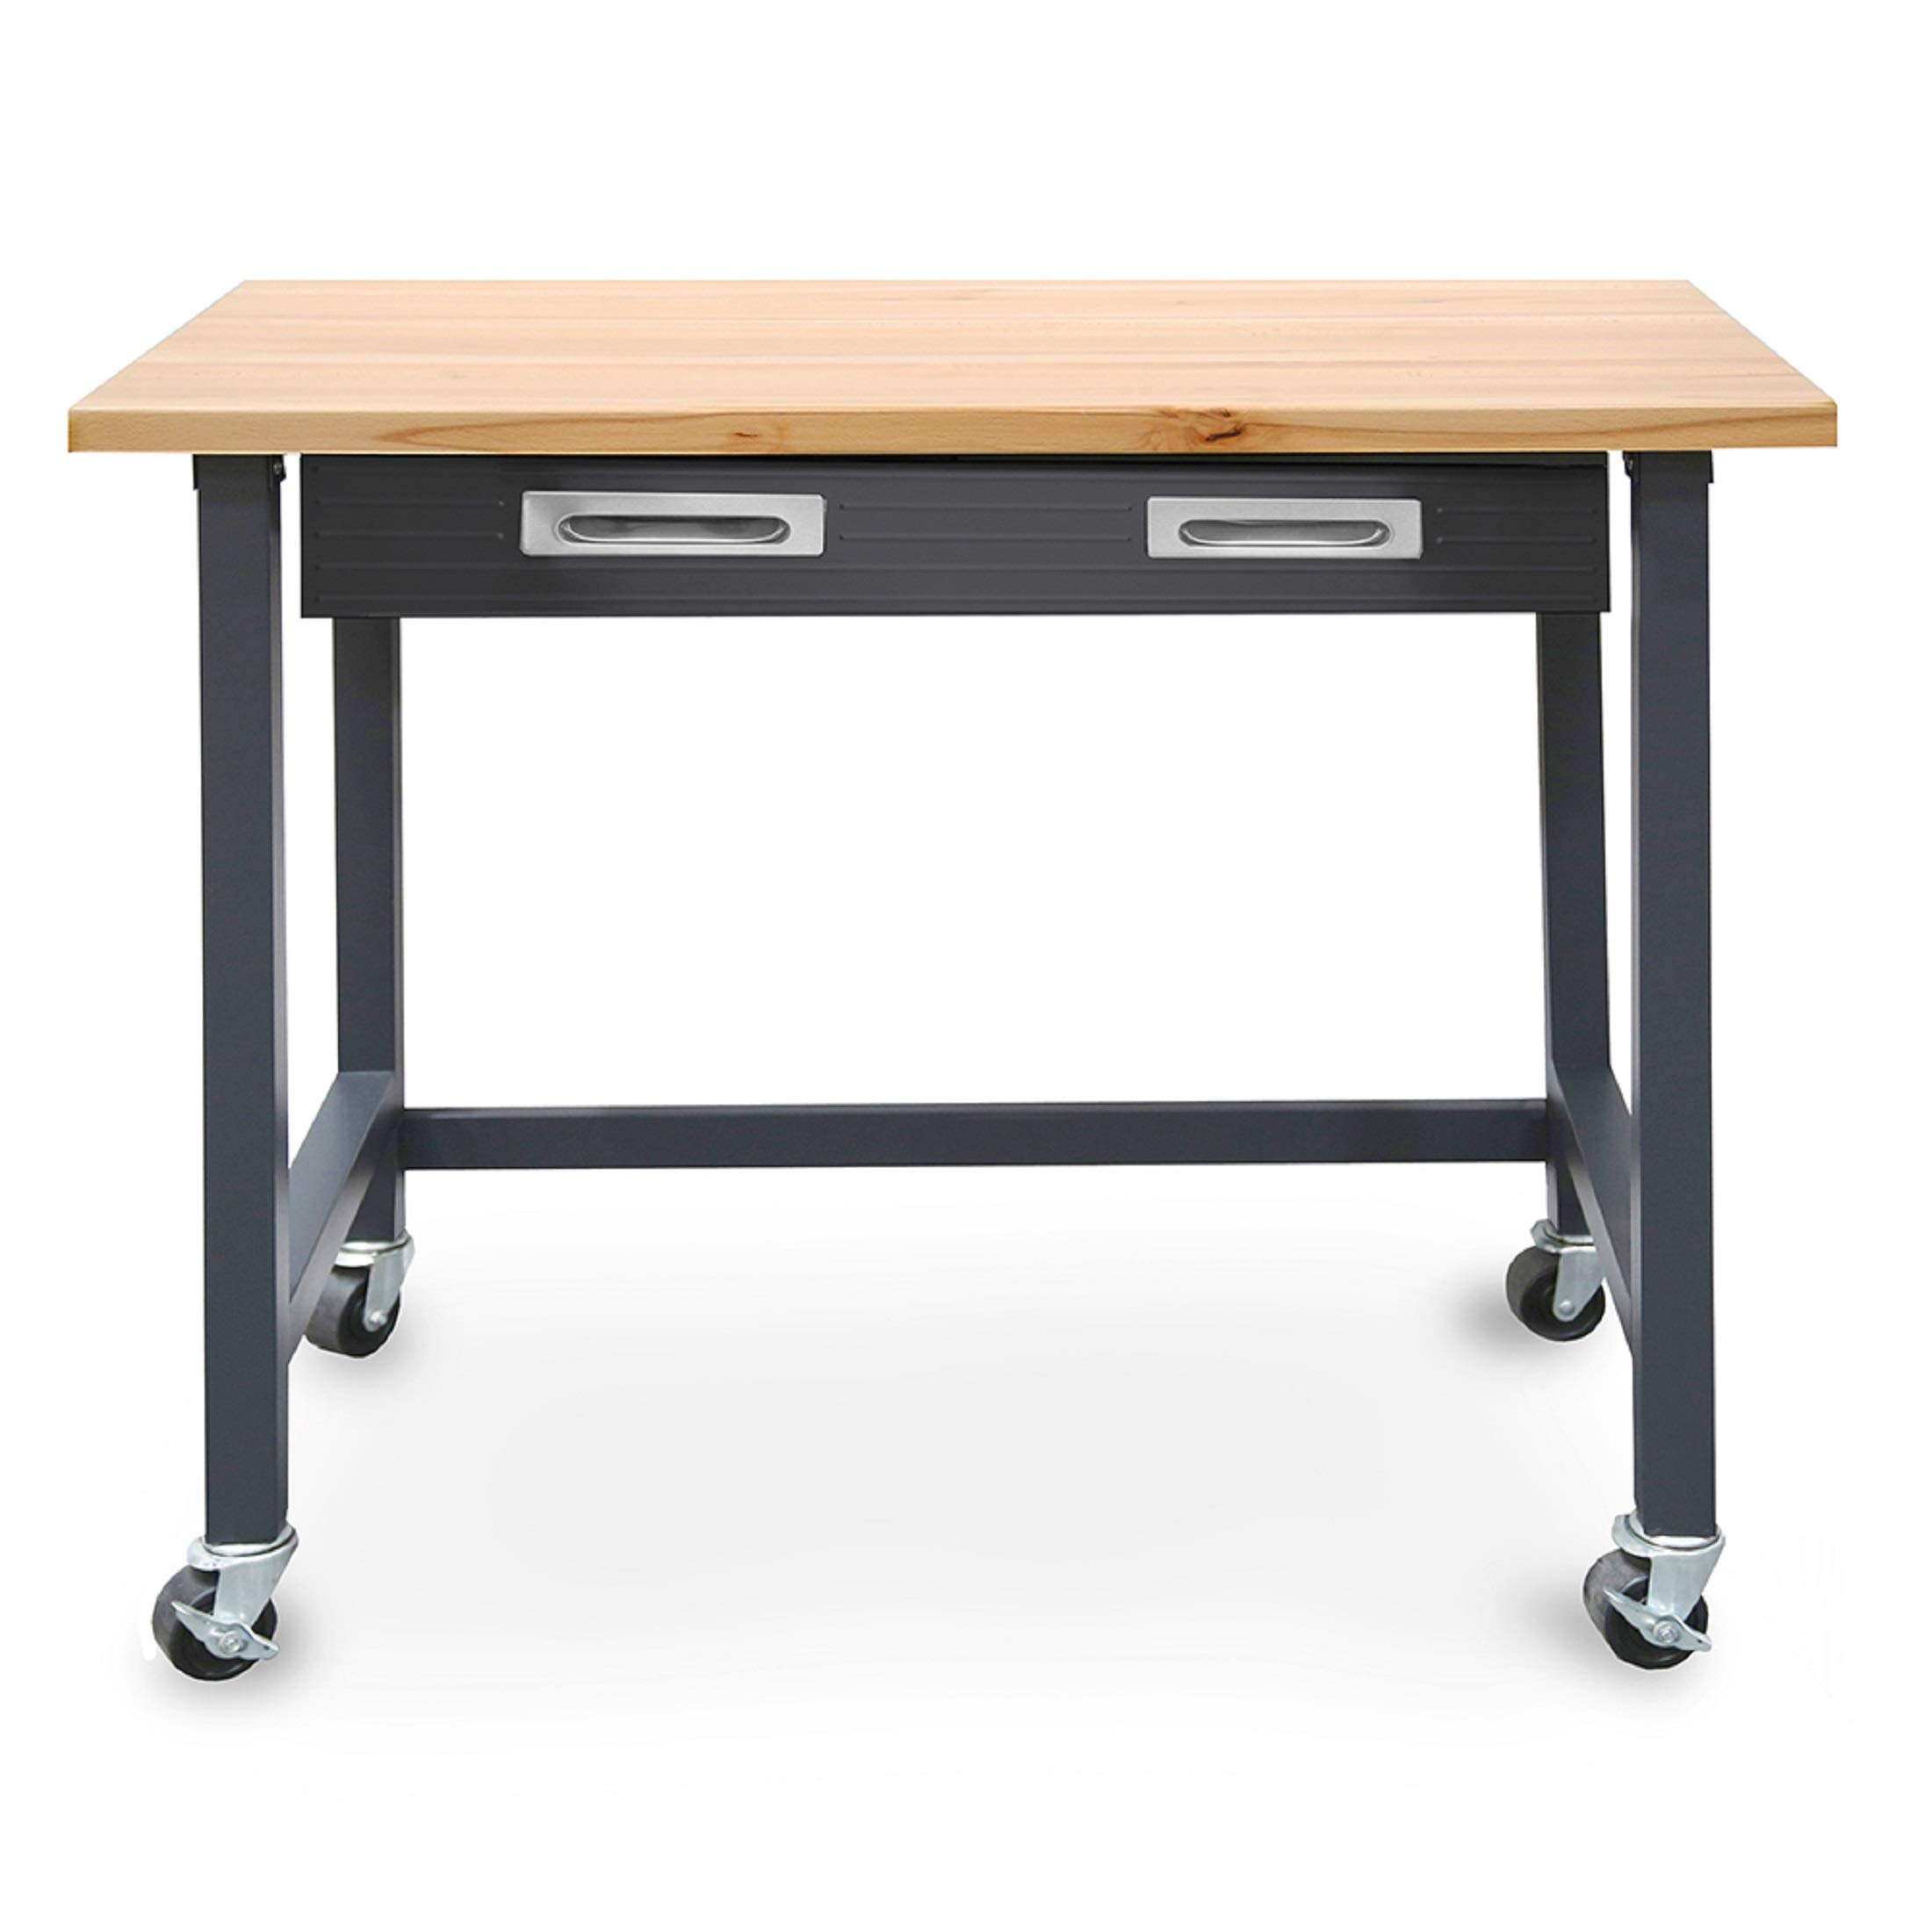 Seville Classics WEB484 UltraGraphite Wood Top Workbench on Wheels with Sliding Organizer Drawer by Seville Classics